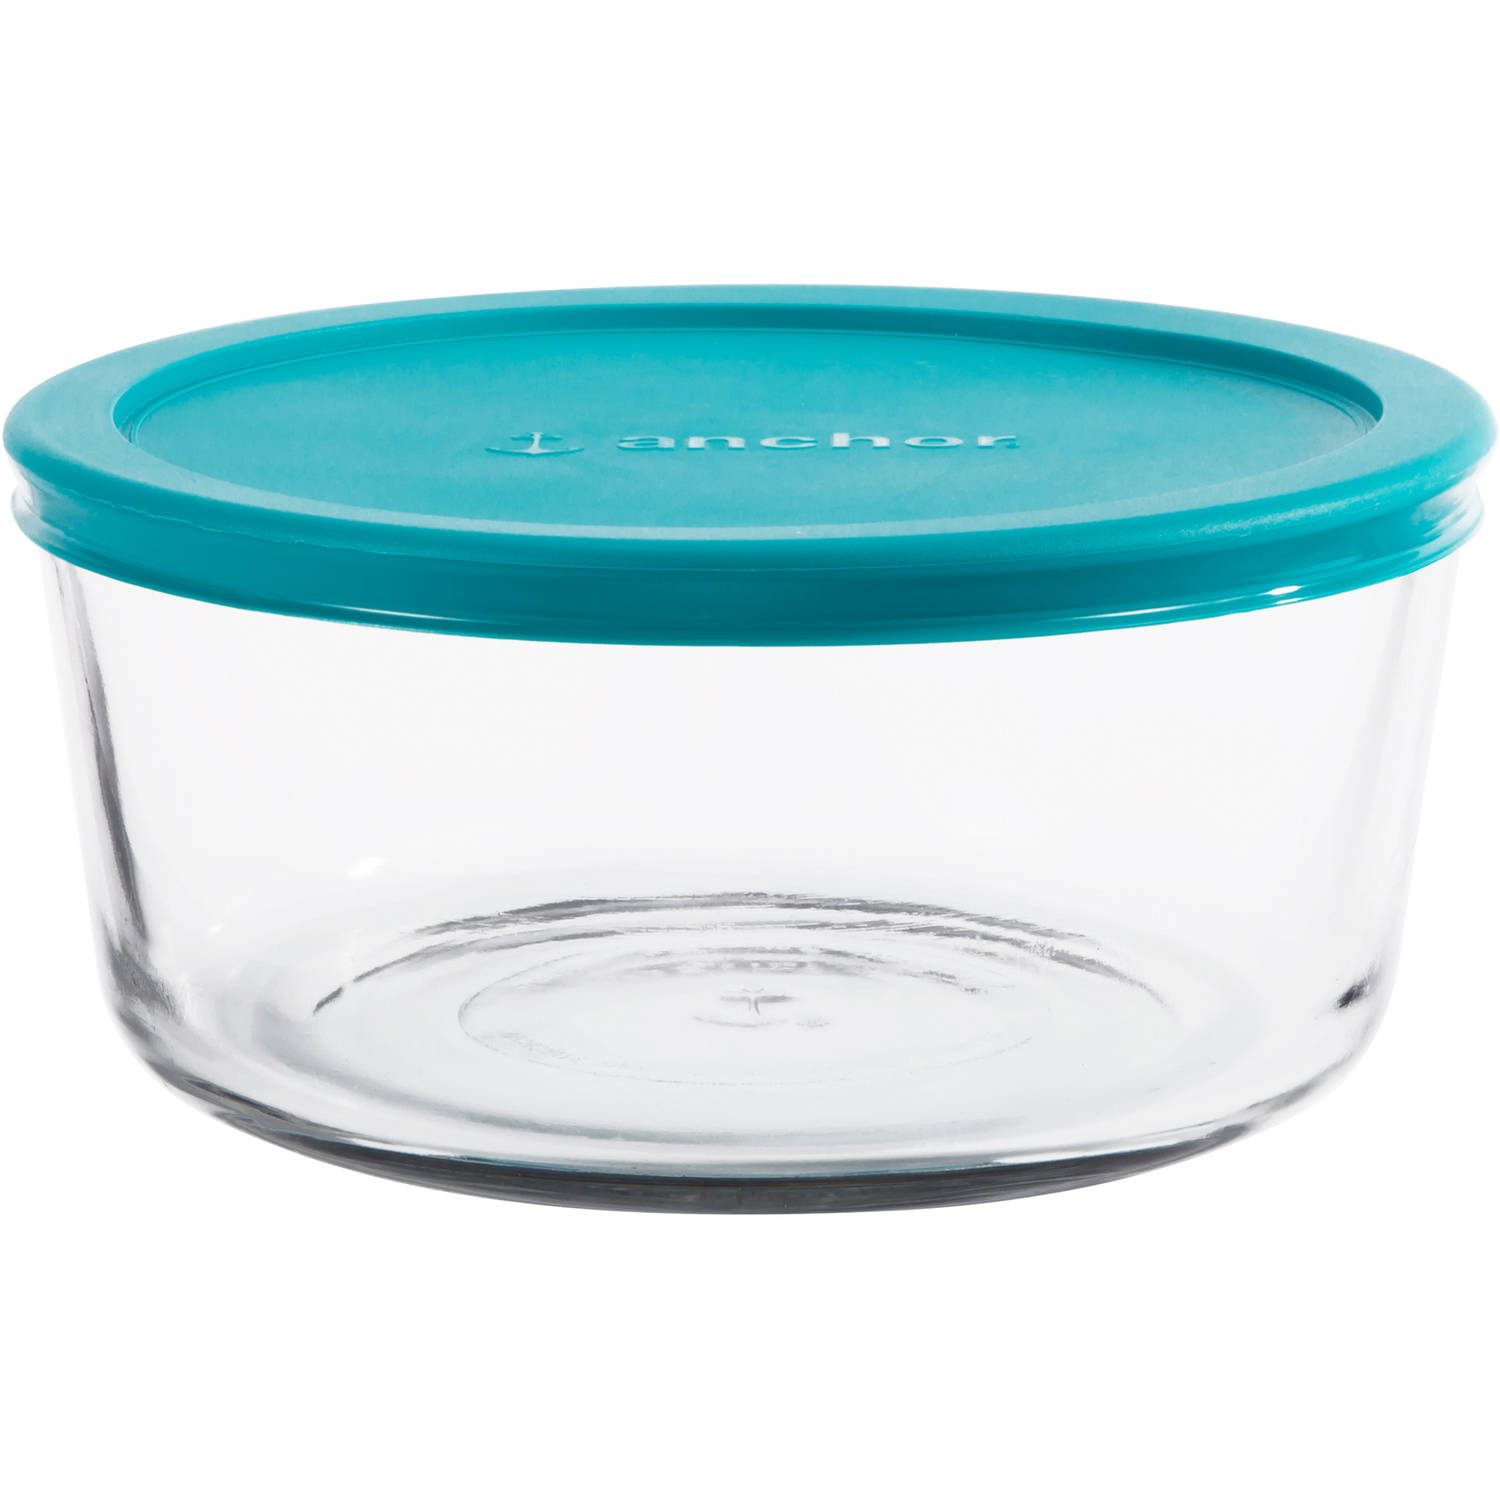 Anchor Hocking 7 Cup Round Food Storage Container with Teal Lid